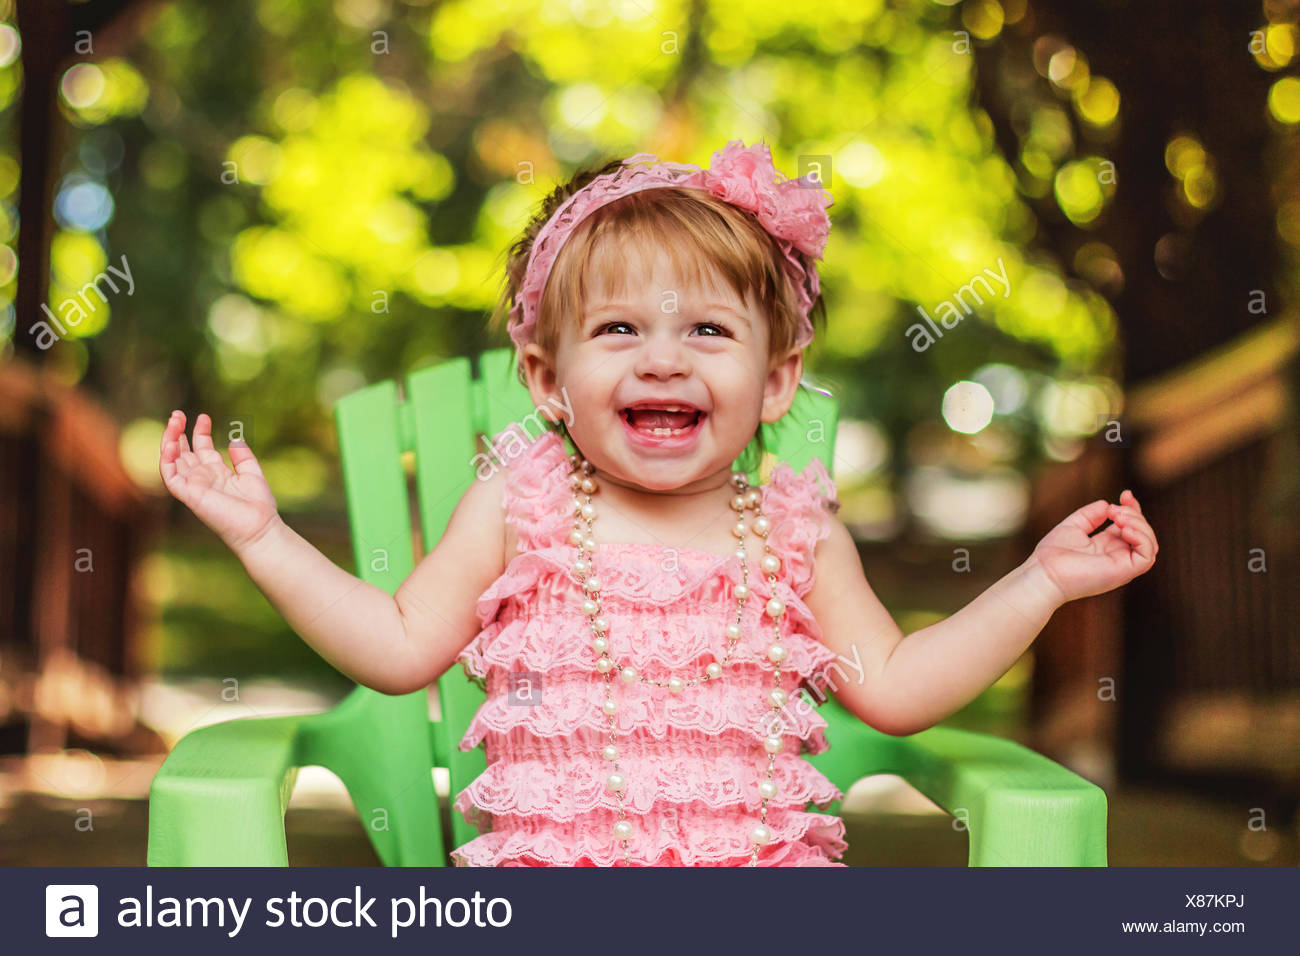 Happy girl in a party dress sitting in garden chair laughing - Stock Image